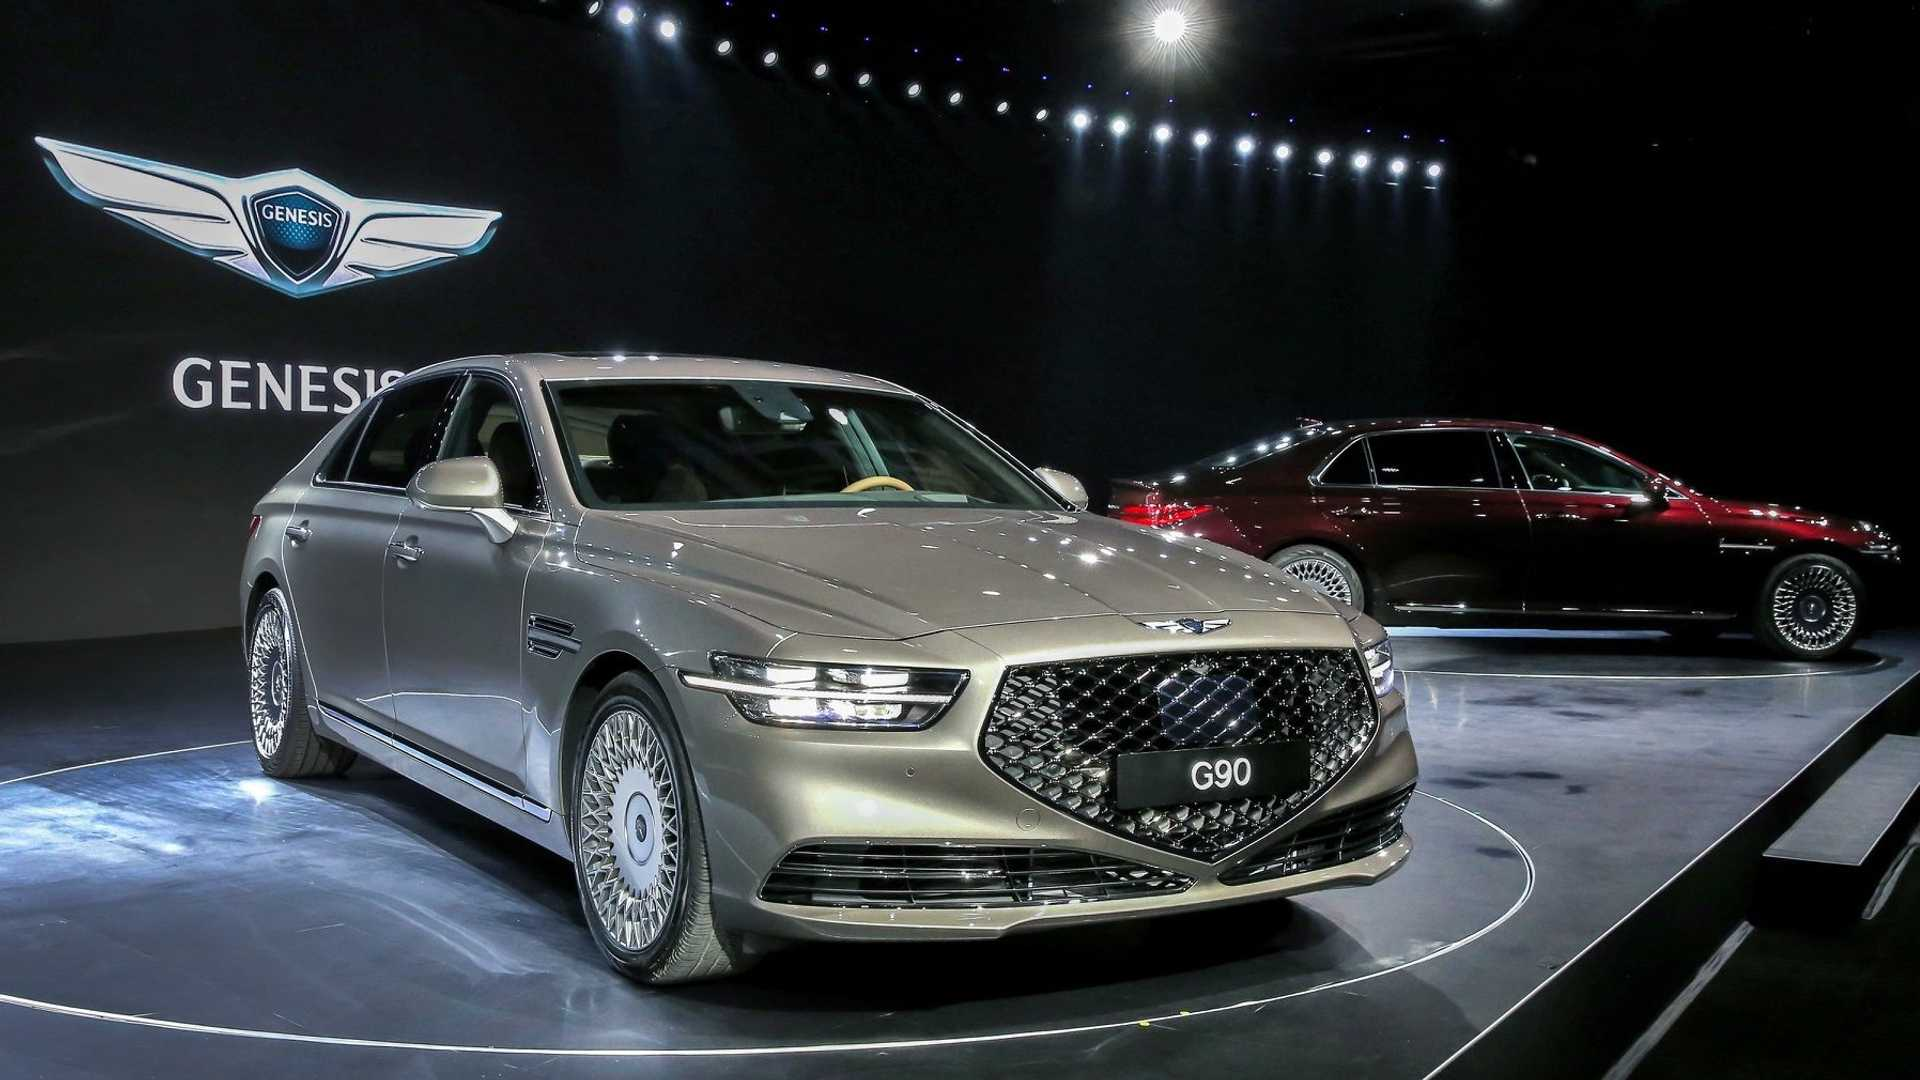 2020 Car Show.2020 Genesis G90 To Make U S Debut At Los Angeles Auto Show